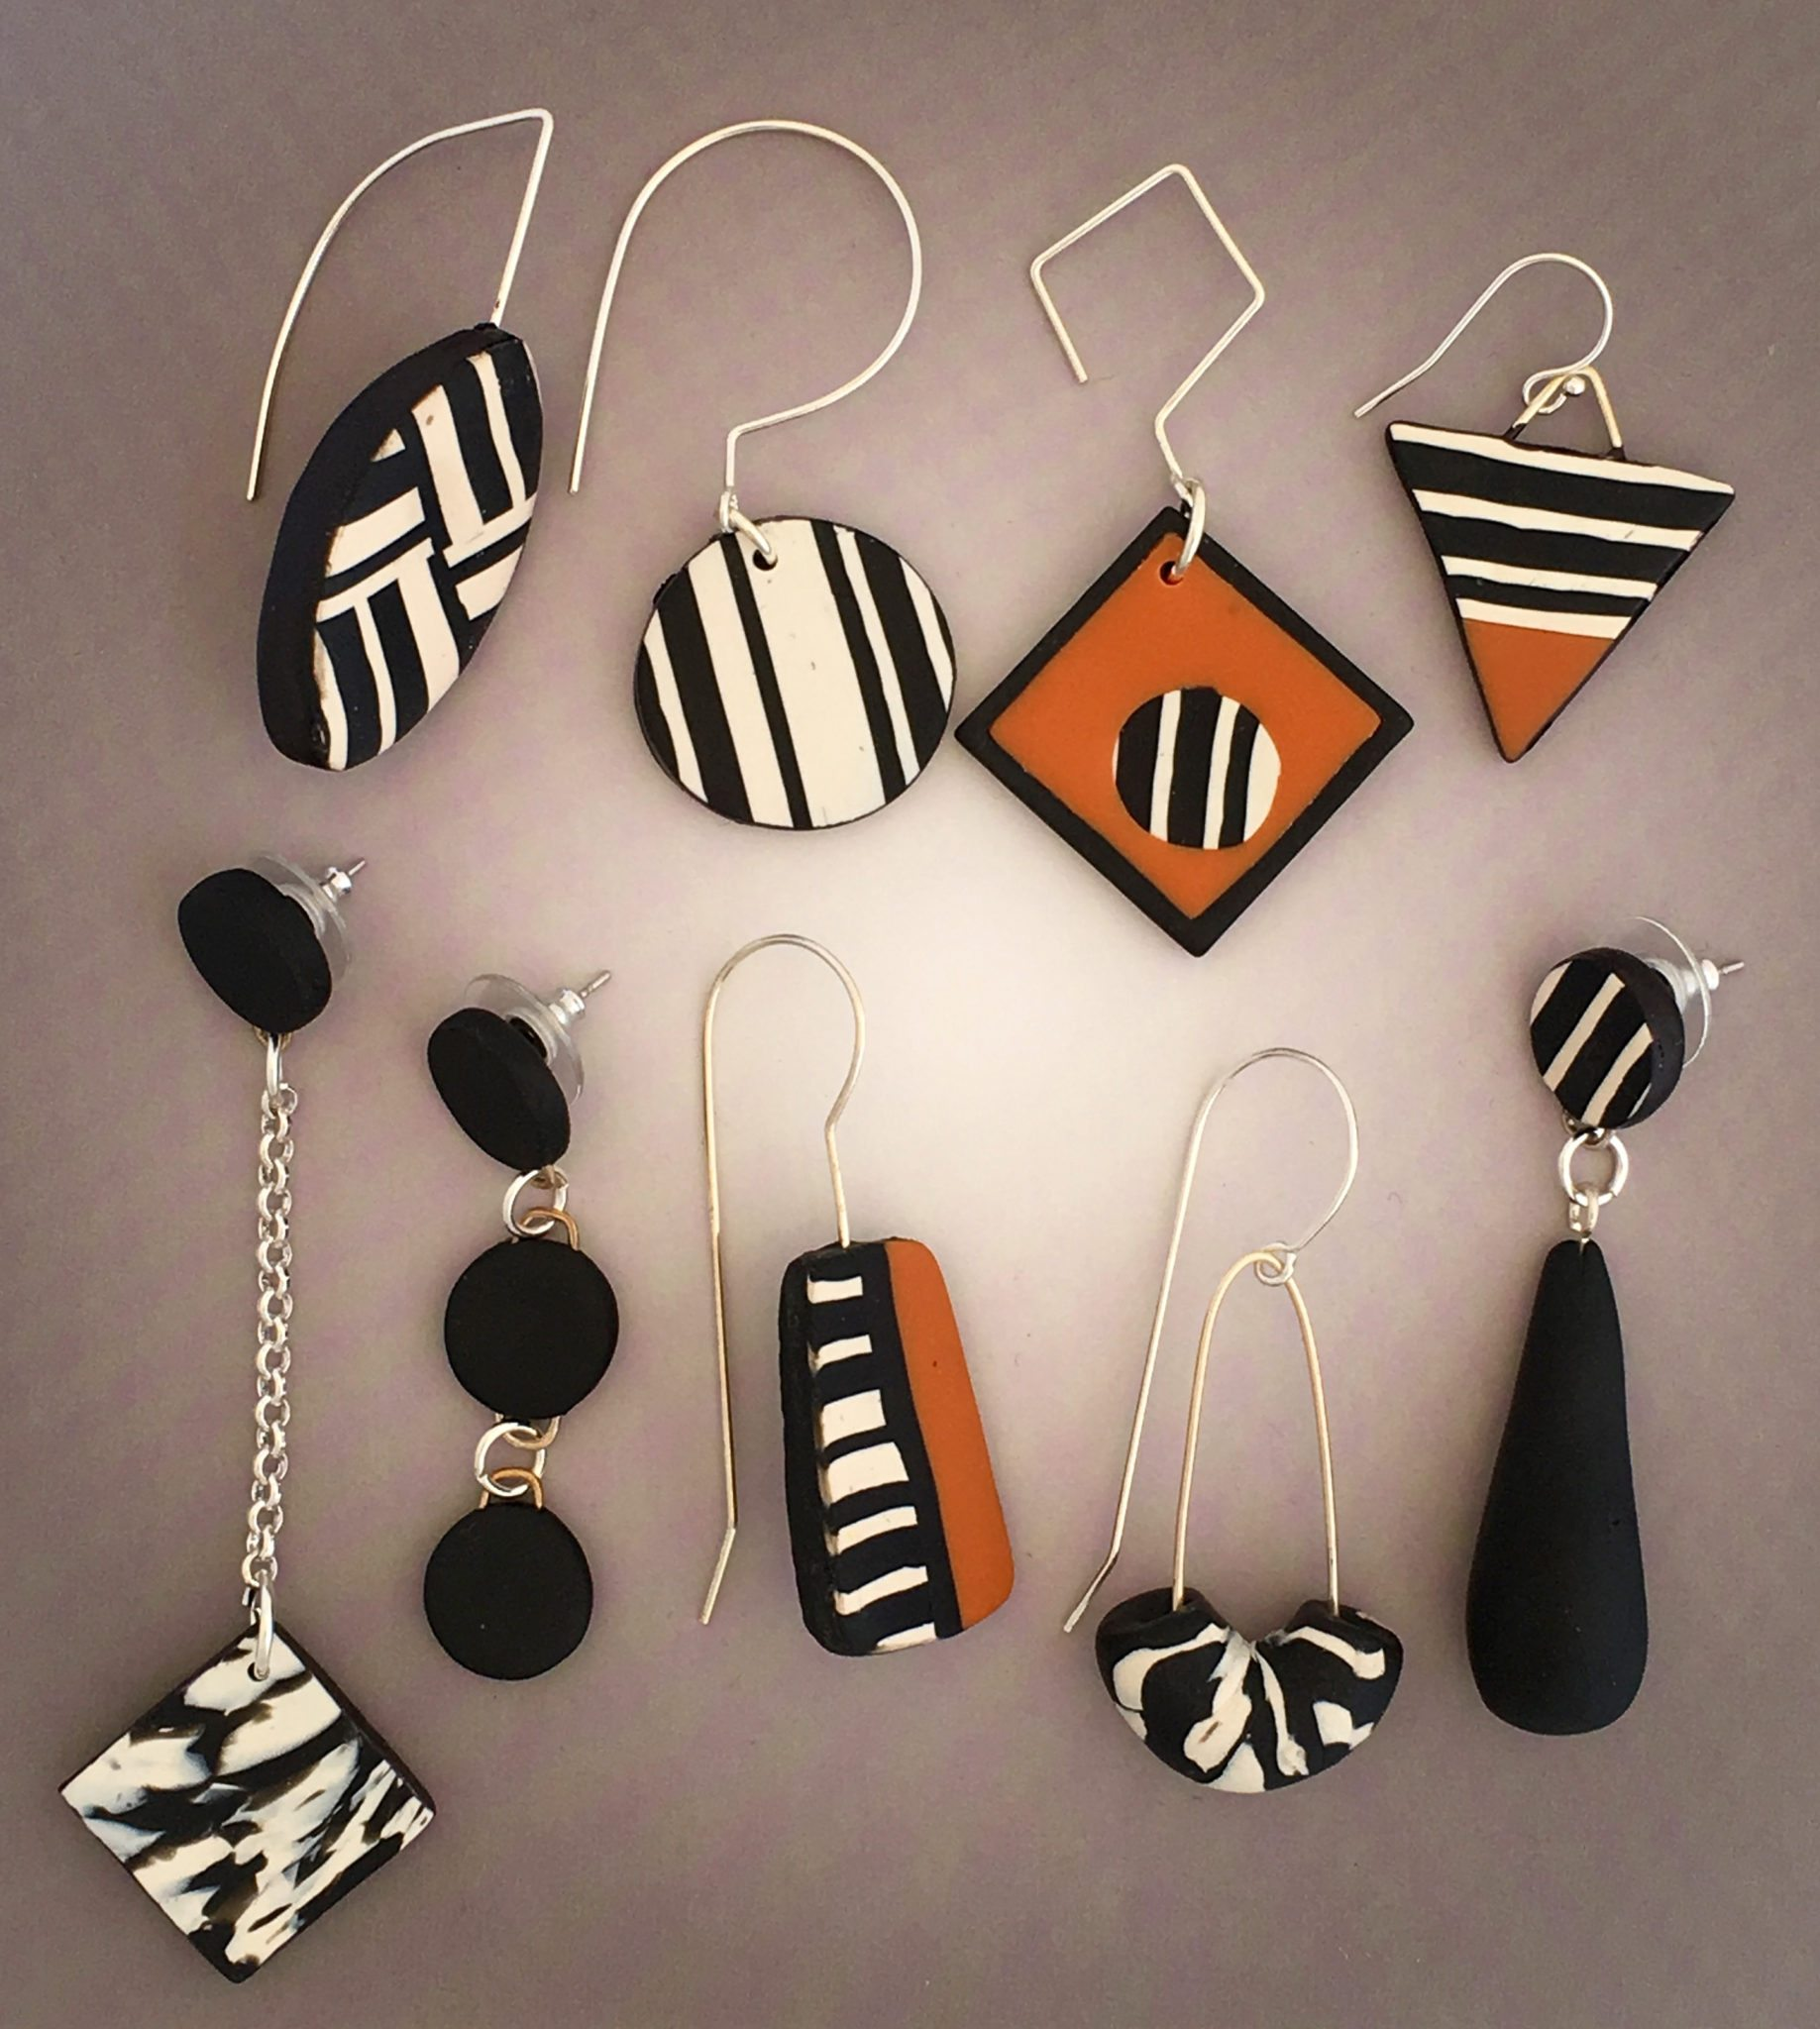 How To Make Clay Earrings At Home